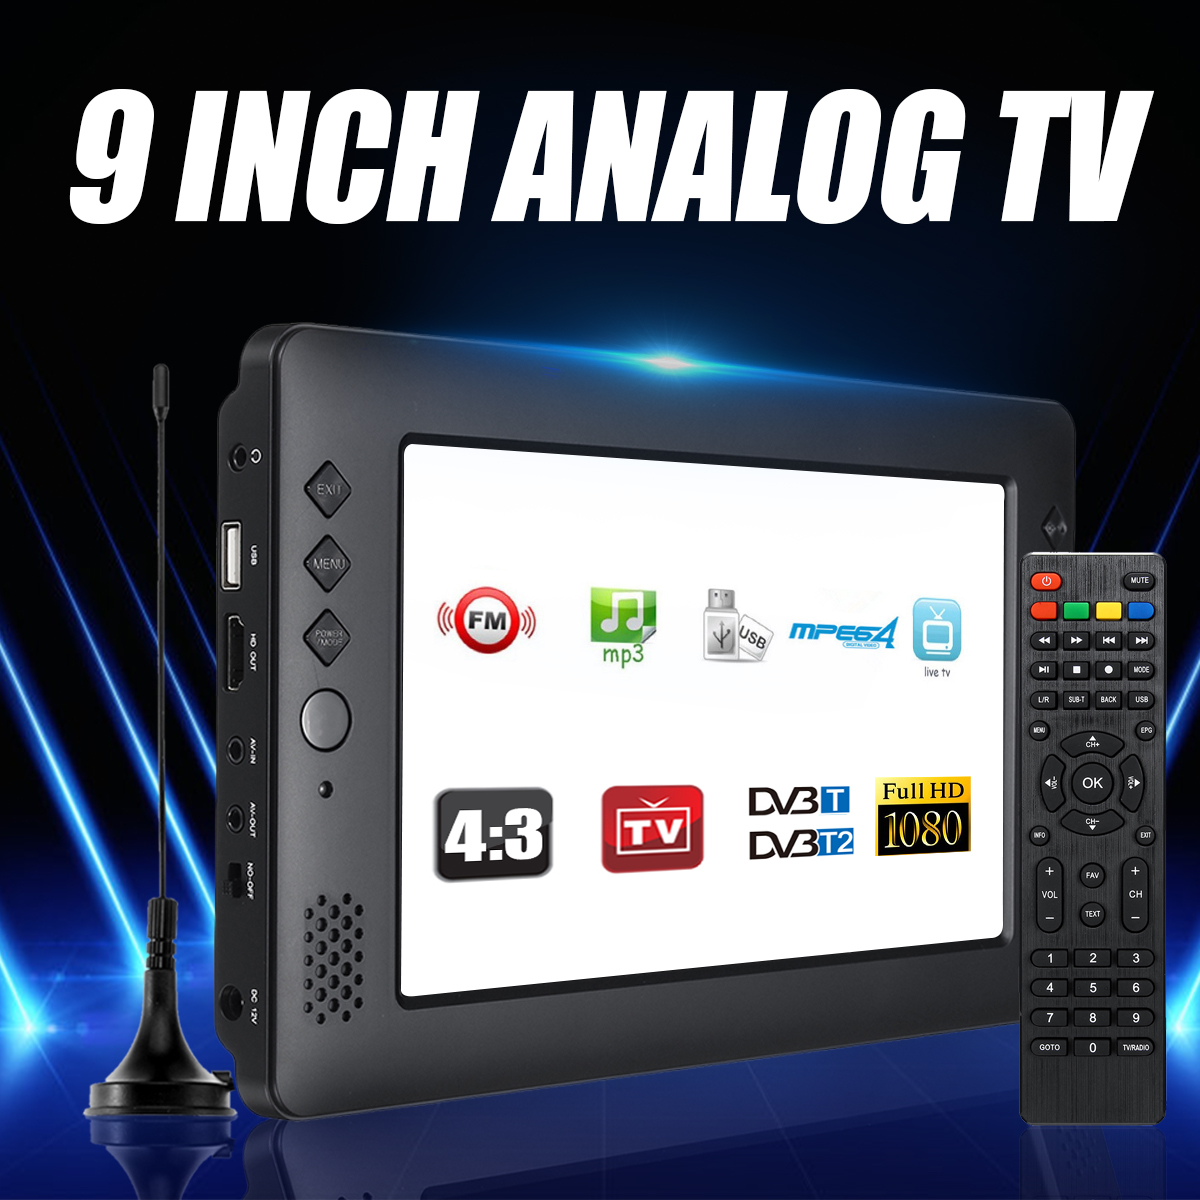 9 Inch Portable Mini TV DVB-T T2 DTV FM HD 1080P H 265 Digital And Analog Led Televisions Support MP4 AC3 HDMI Monitor